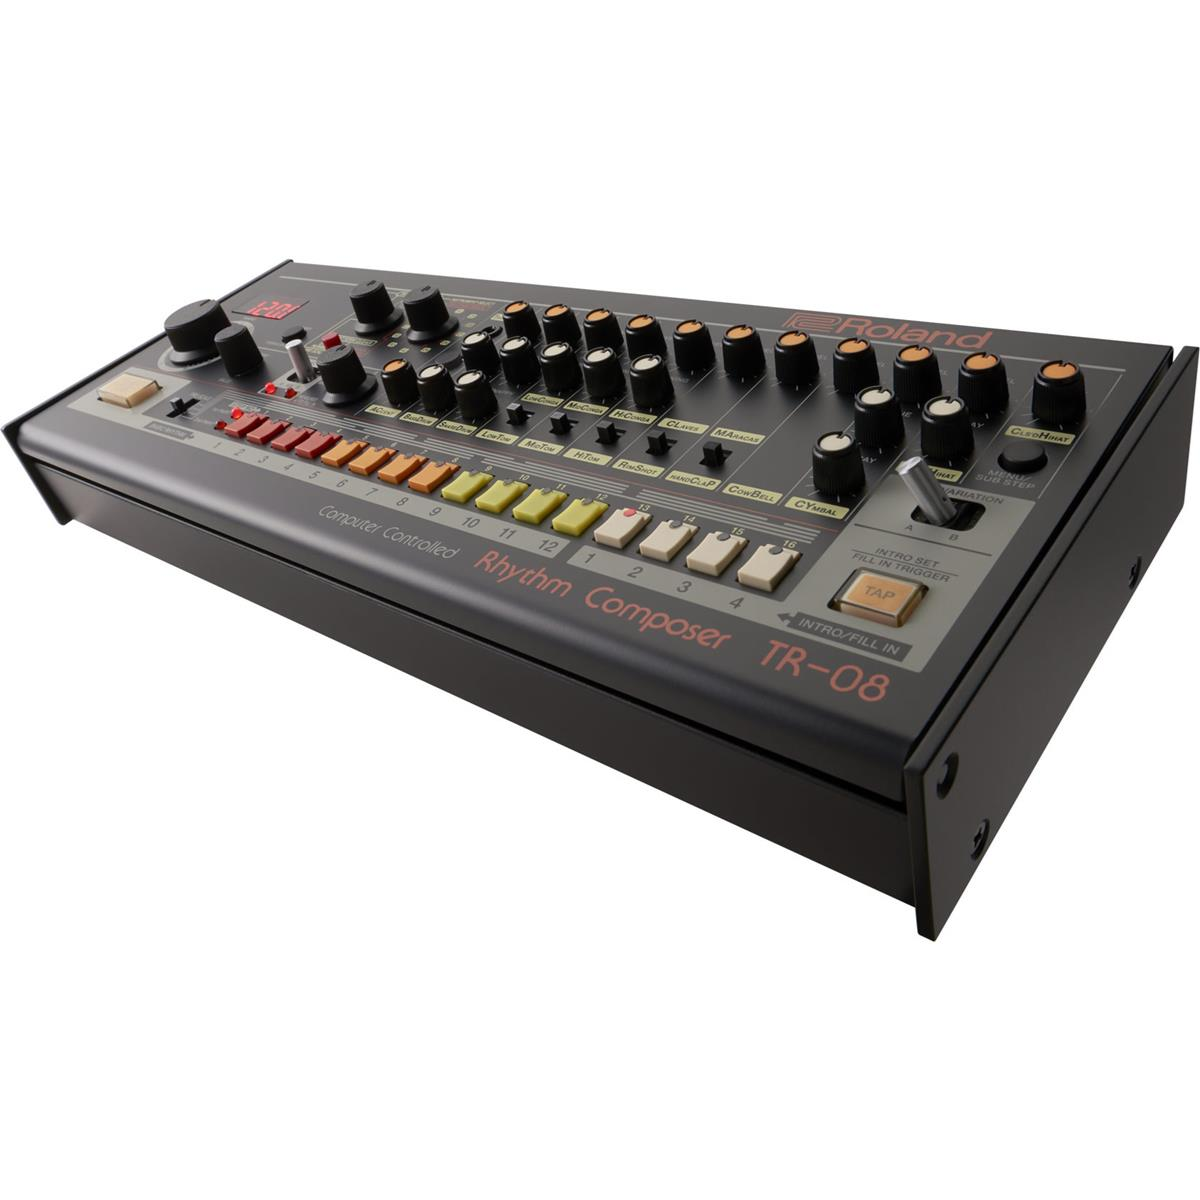 ROLAND-TR-08-Boutique-Limited-Edition-sku-18975